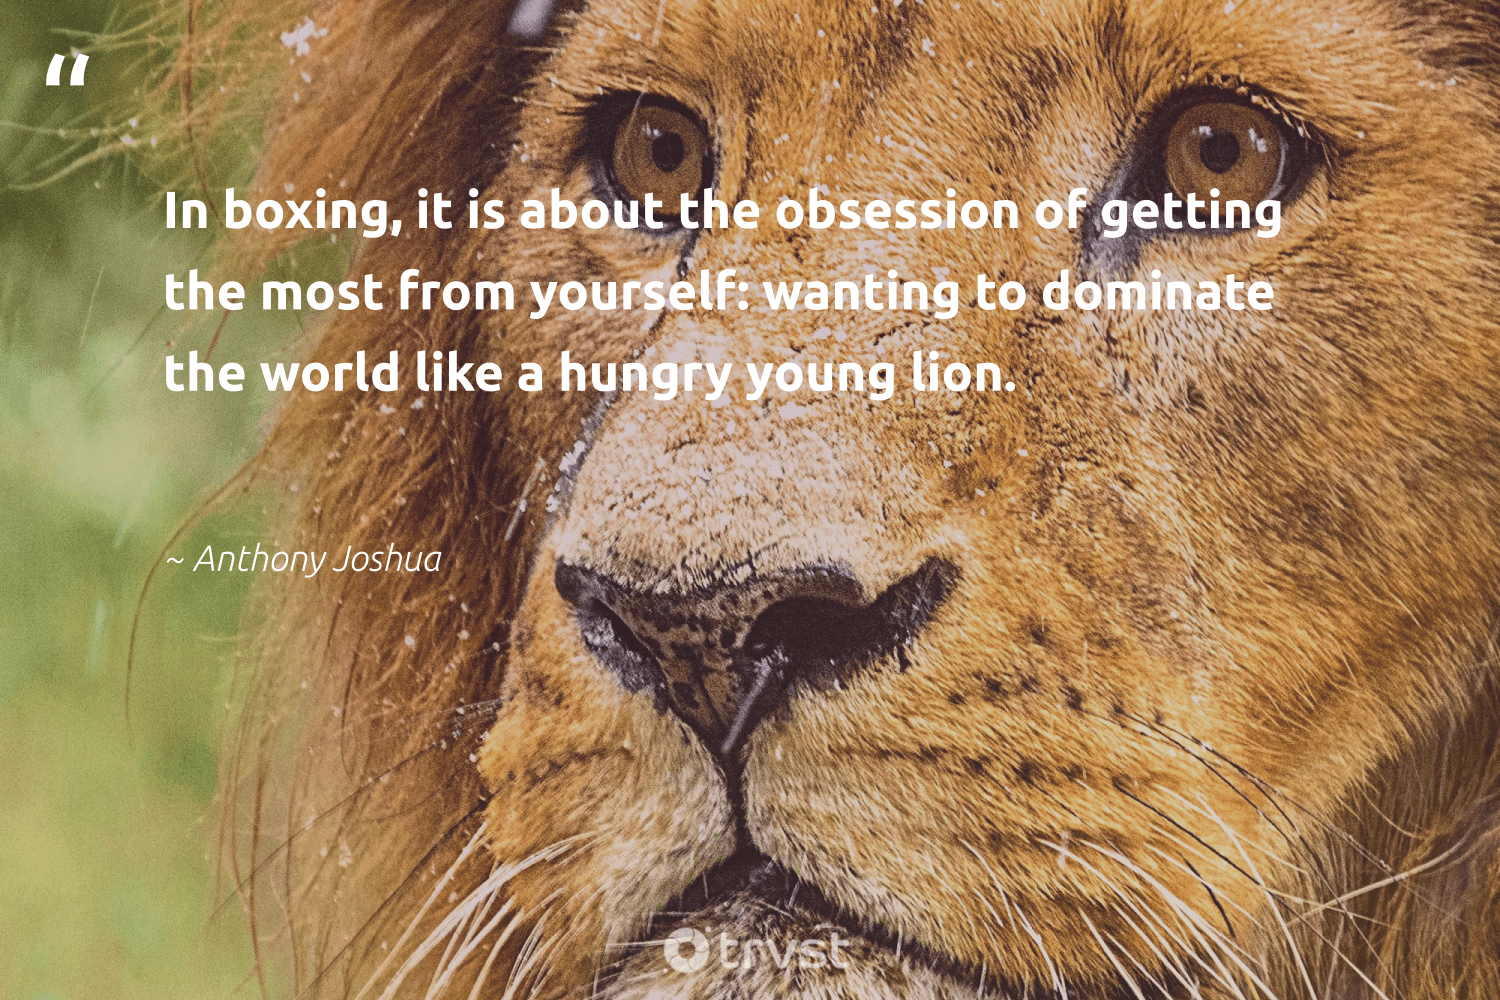 """""""In boxing, it is about the obsession of getting the most from yourself: wanting to dominate the world like a hungry young lion.""""  - Anthony Joshua #trvst #quotes #hungry #lion #hunger #majesticwildlife #makeadifference #socialimpact #food #wildlifeprotection #equalopportunity #thinkgreen"""